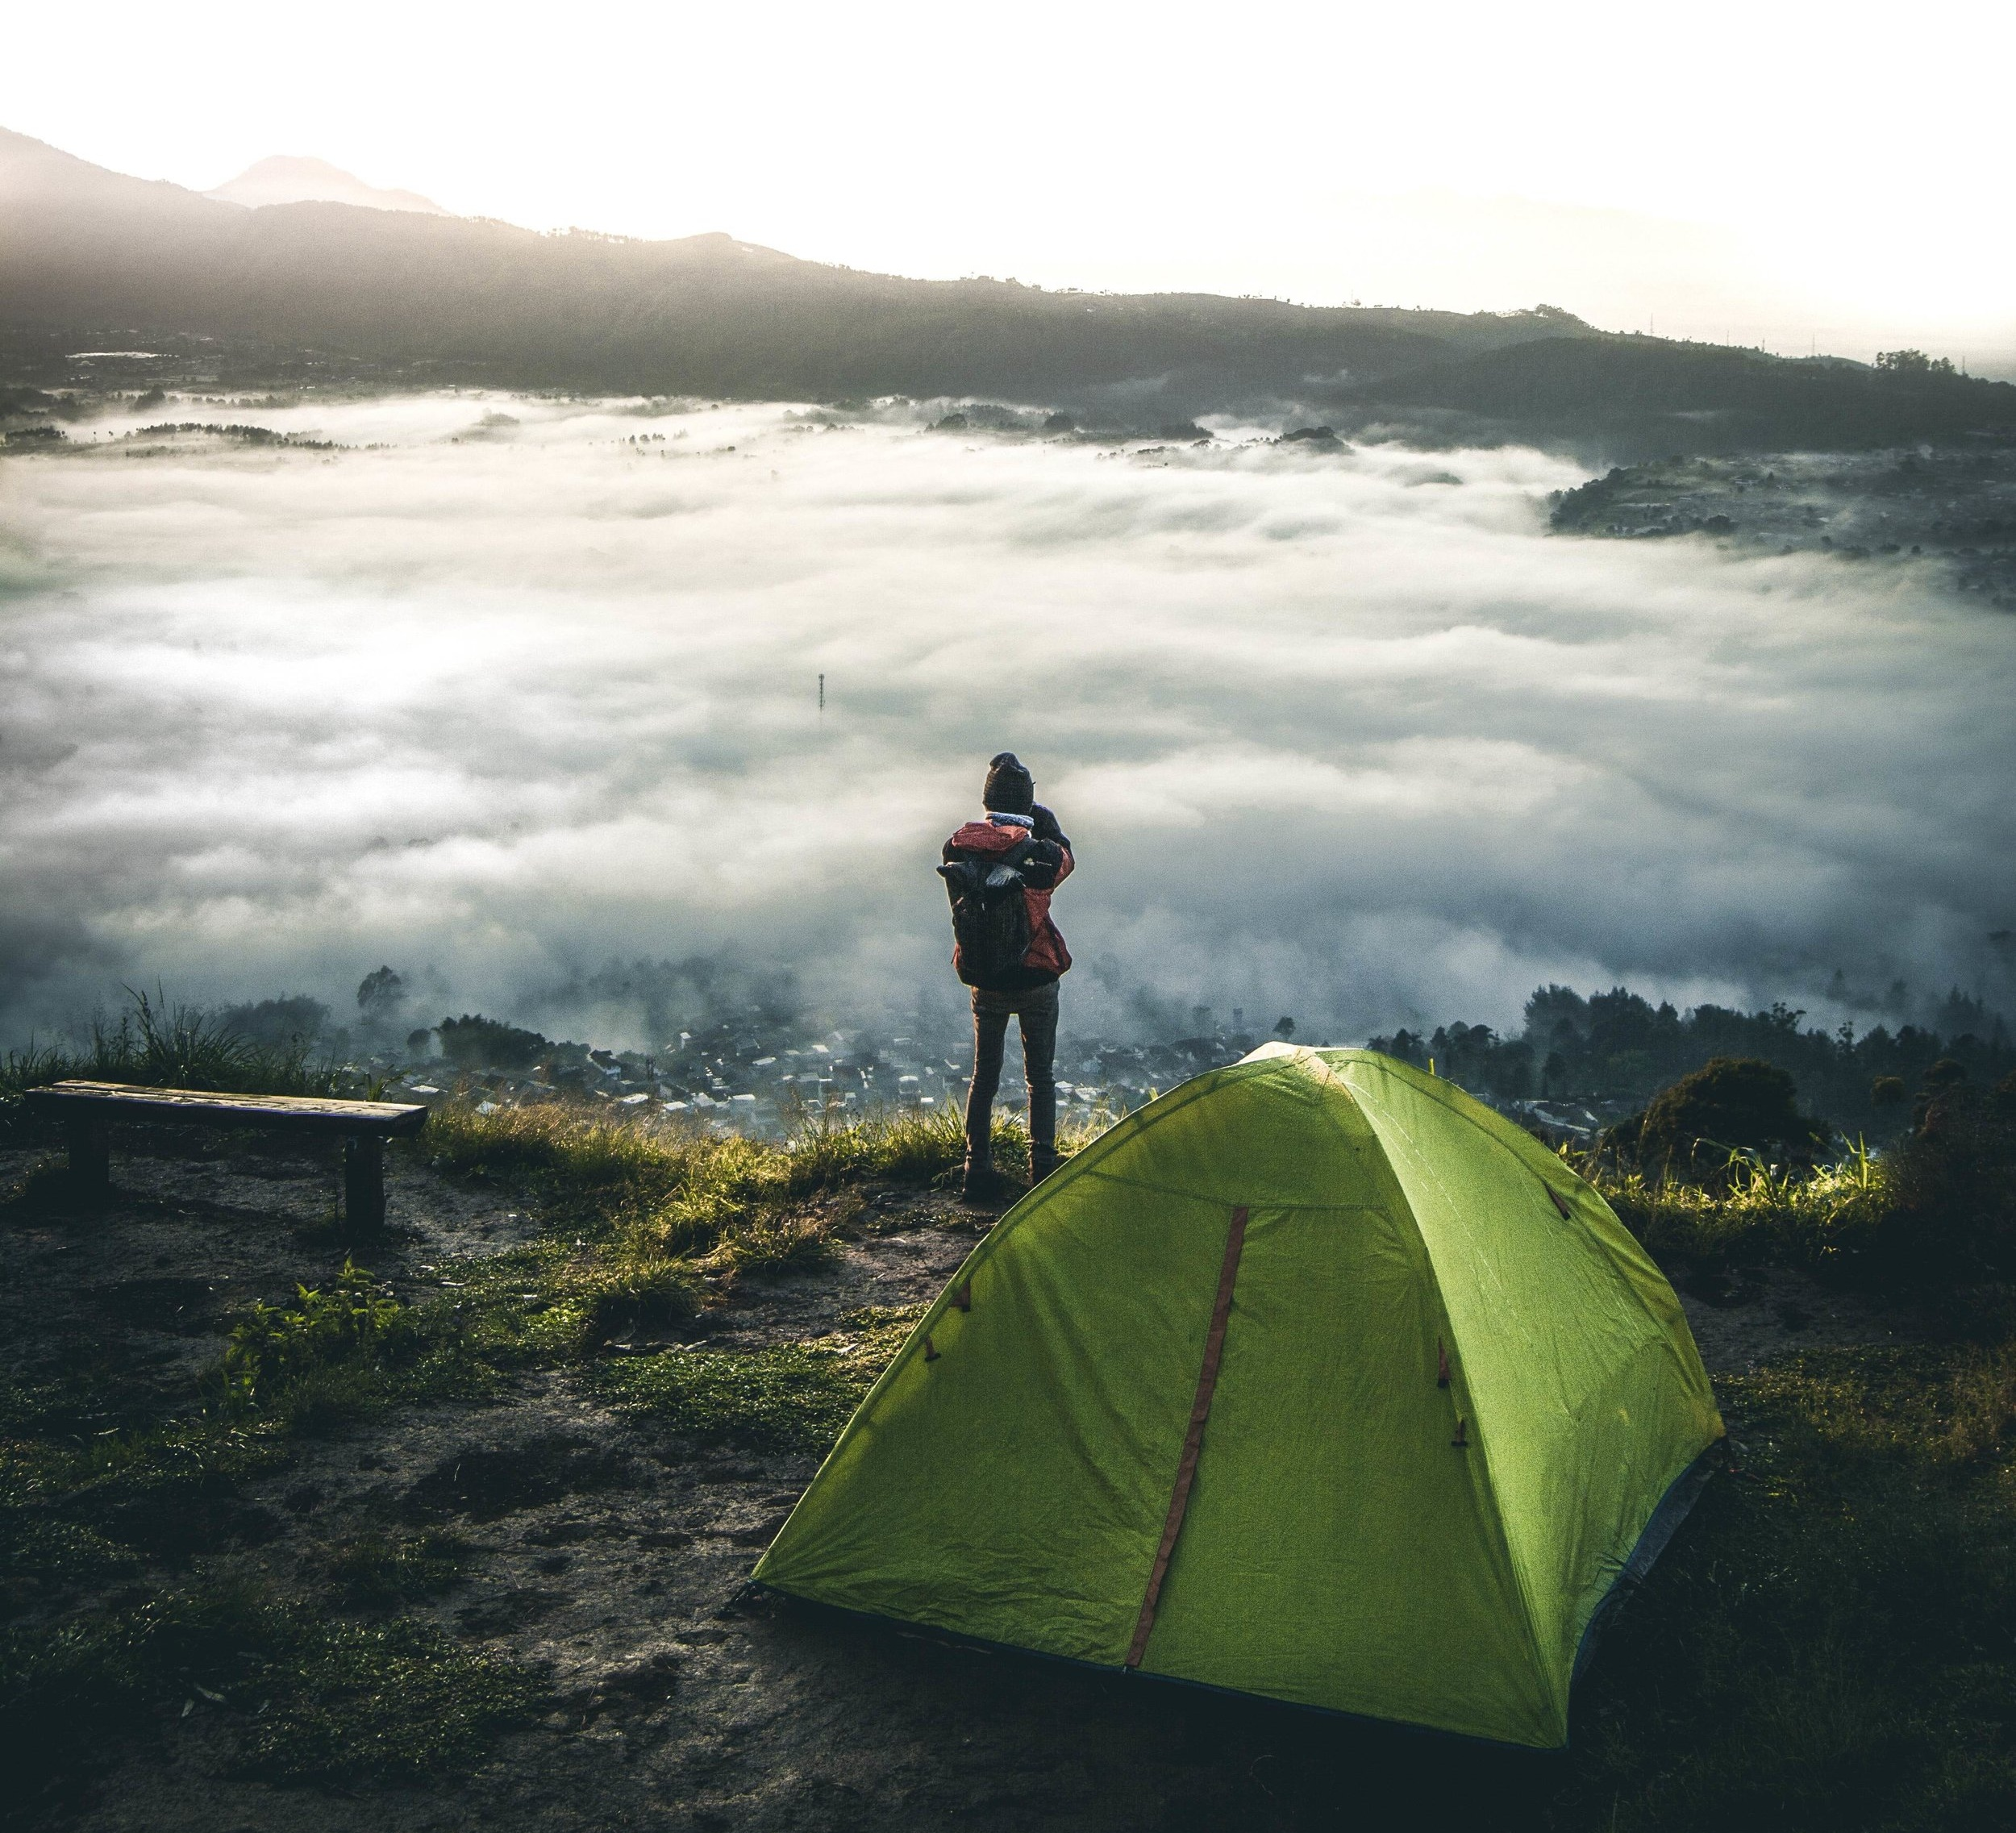 On foggy mornings or humid days, there may be extra moisture in the air that can condense inside your tent, giving an effect as if your tent is leaking.